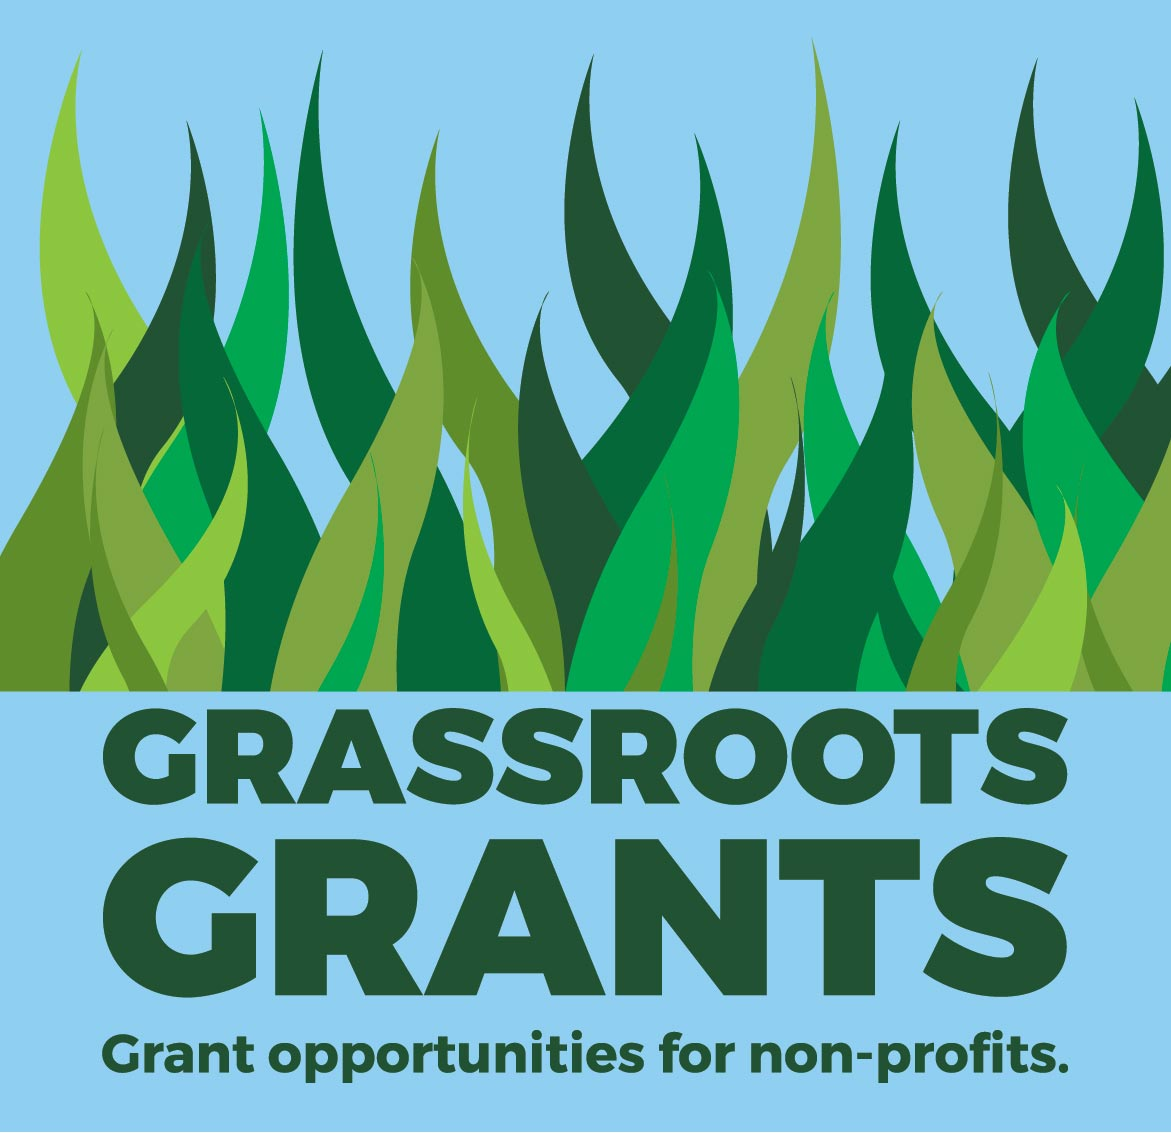 Grassroots%20grants%20square